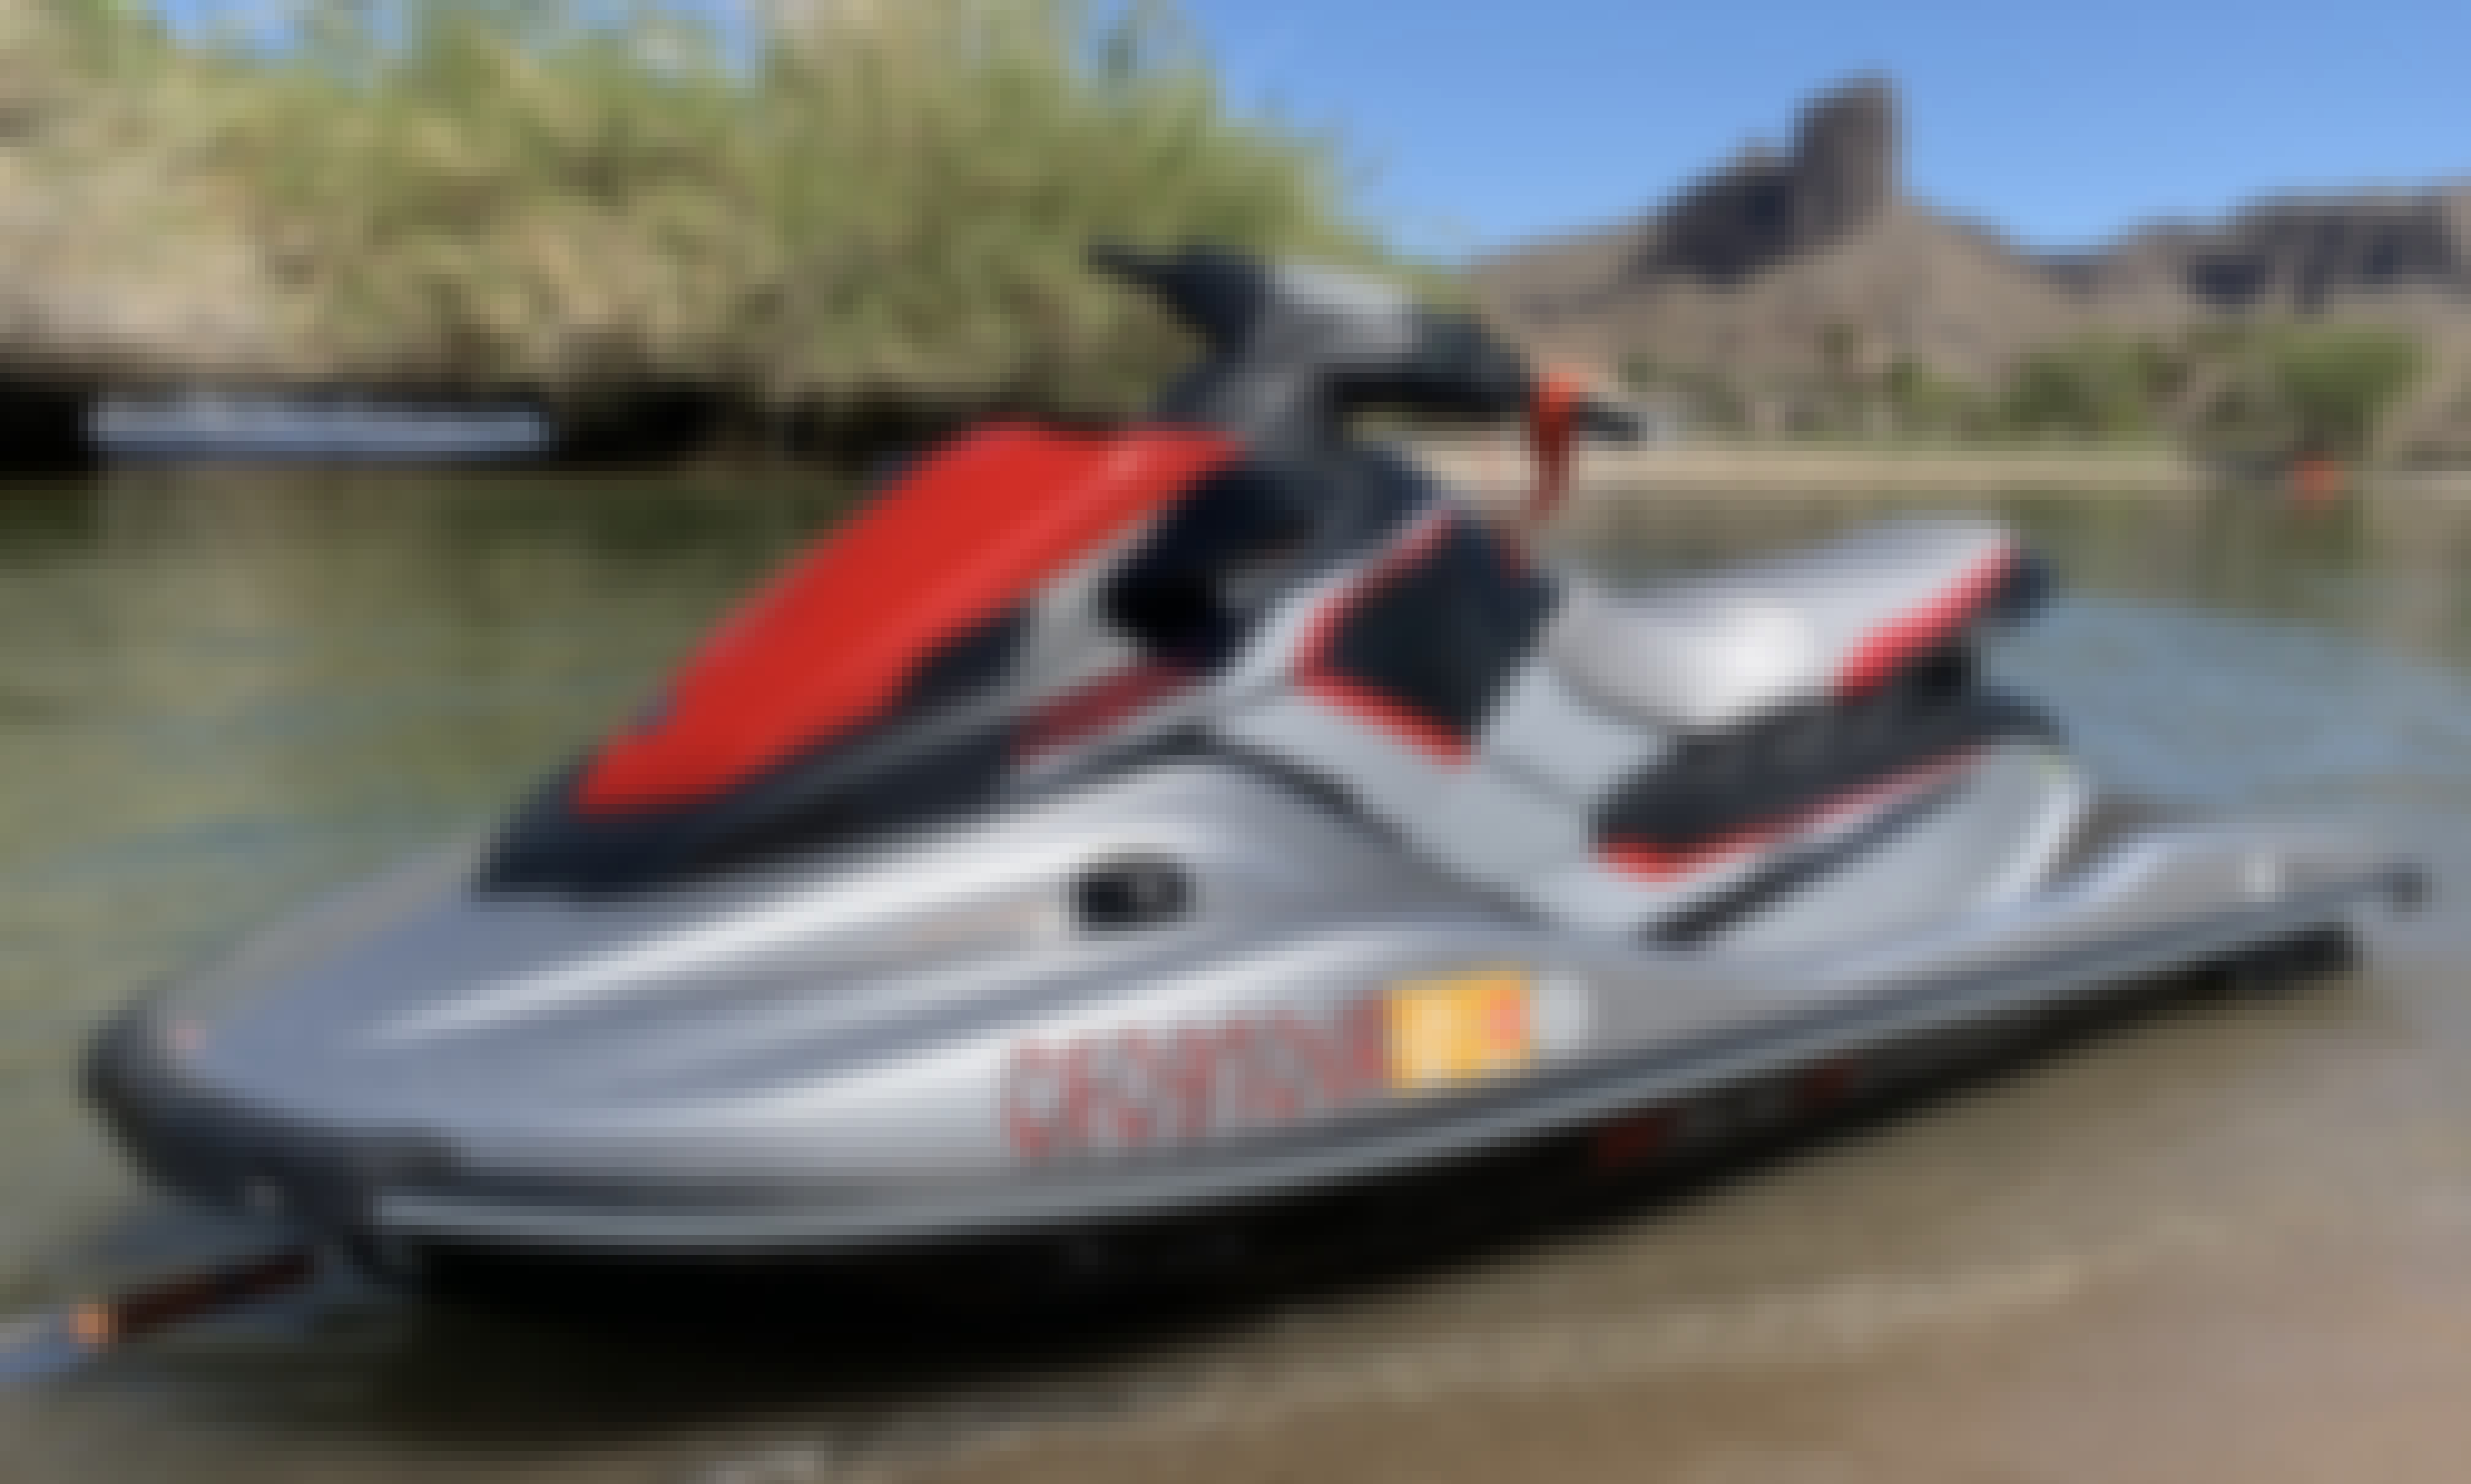 2017 Yamaha EX Deluxe Jet Ski in Southern California